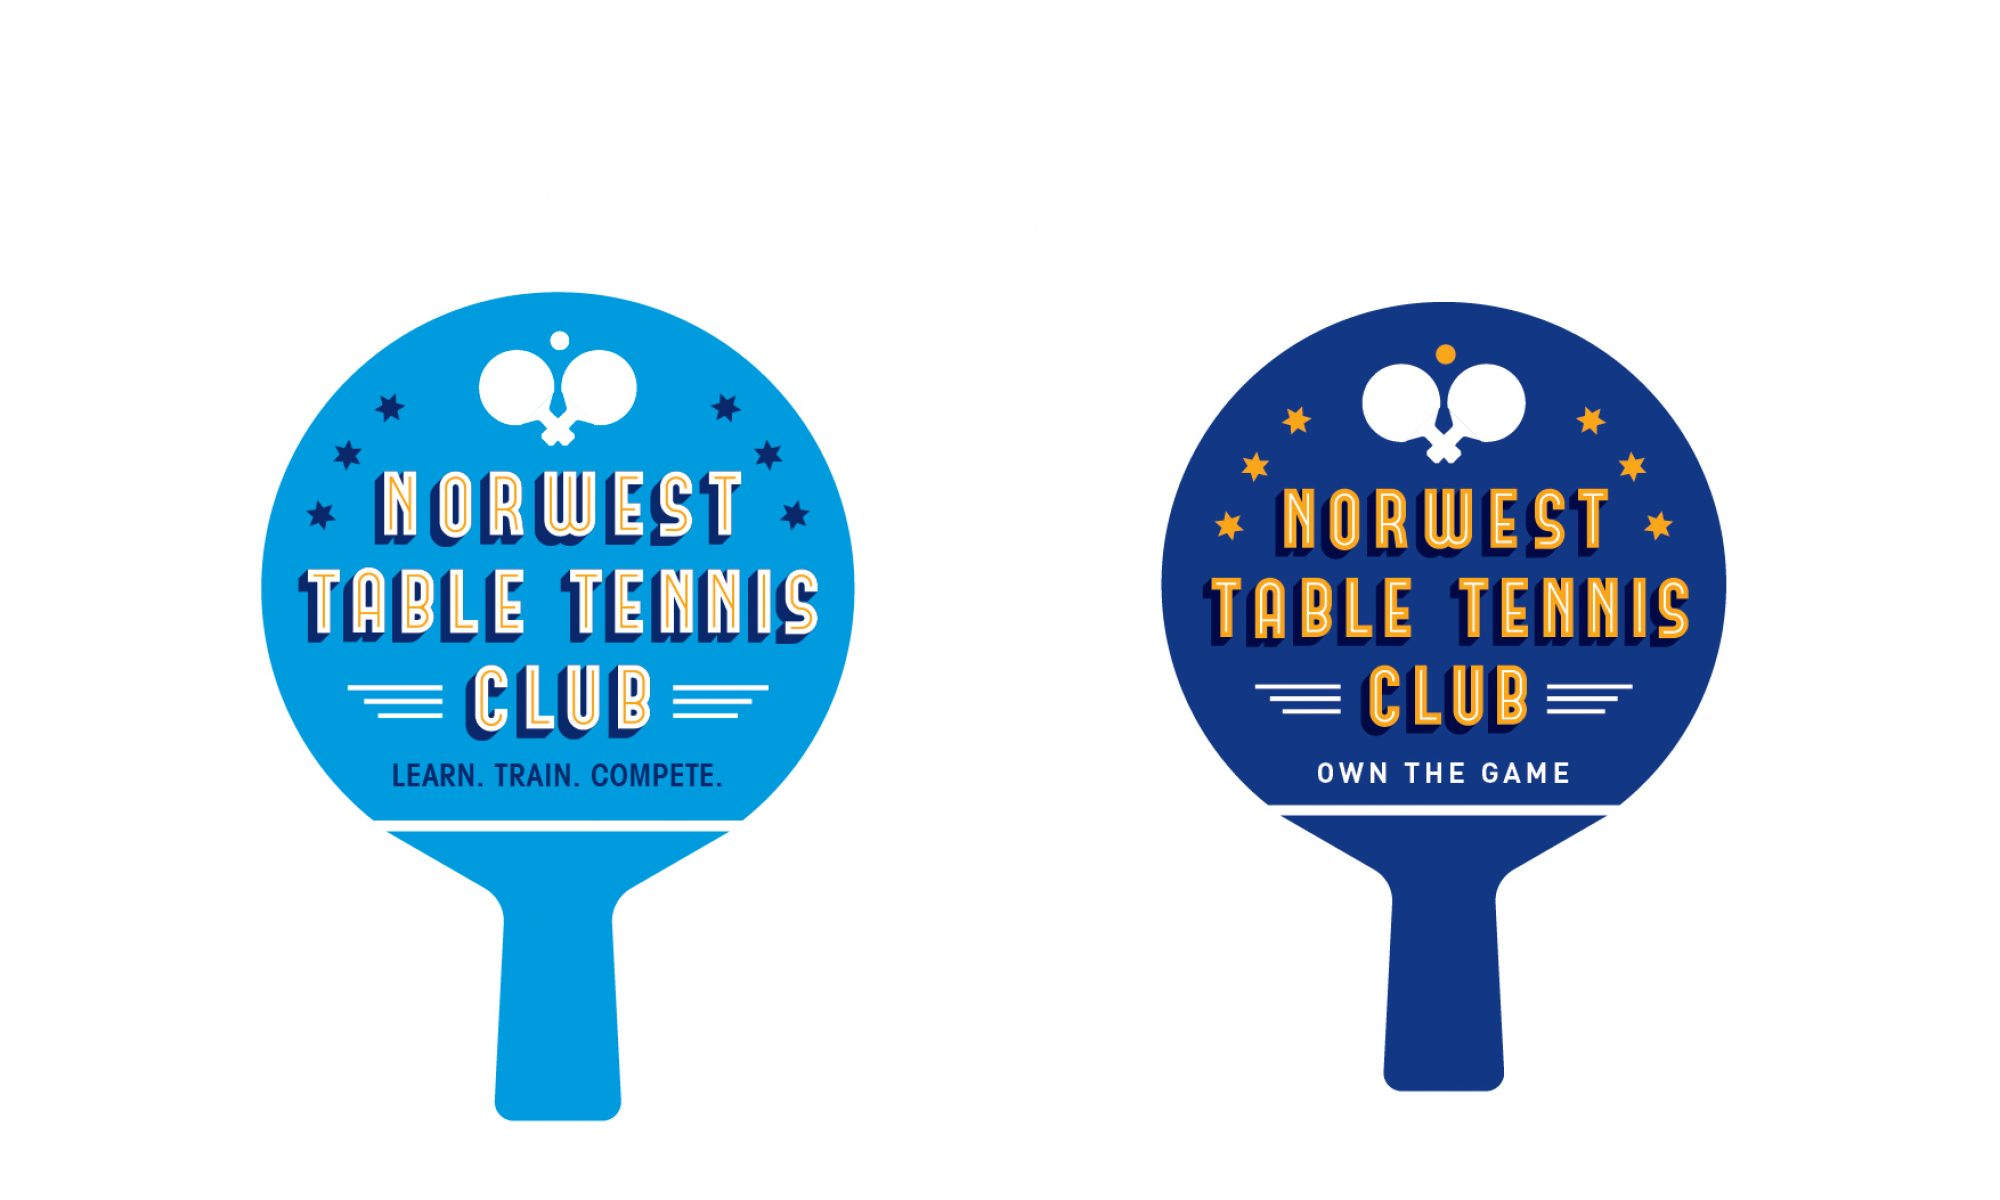 Norwest Table Tennis Club